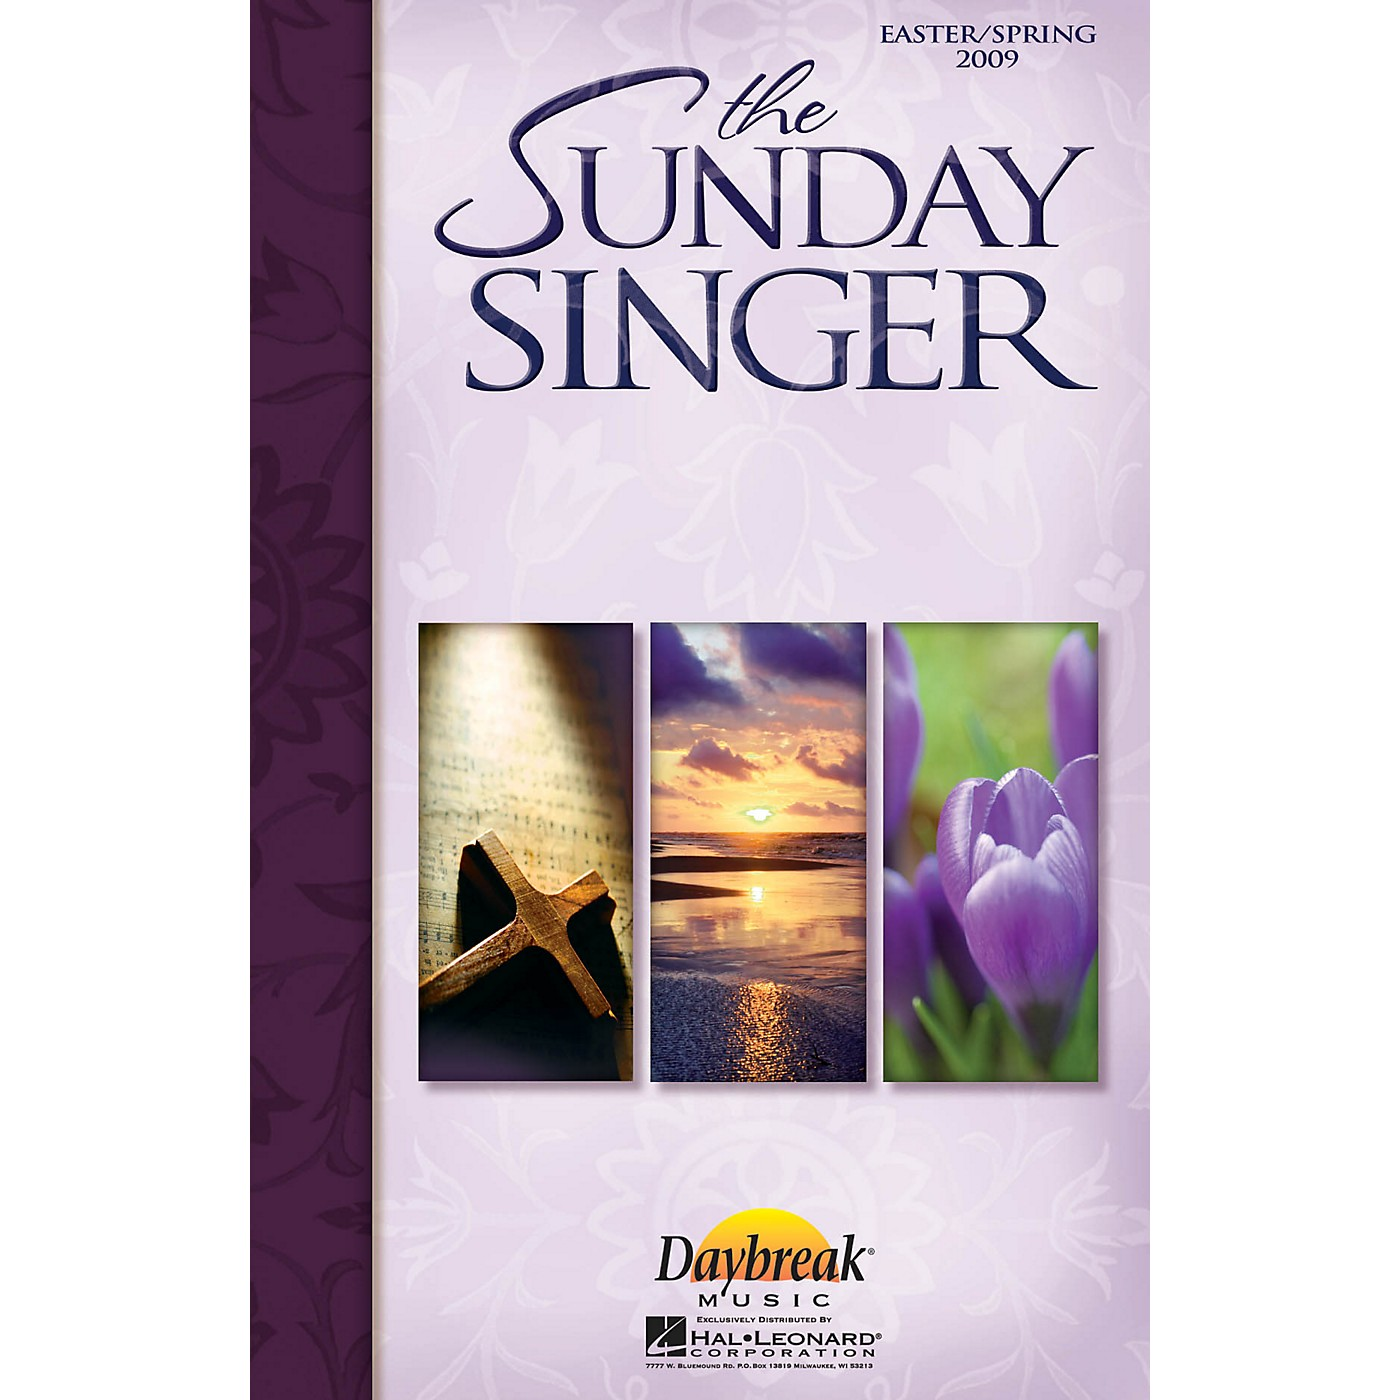 Daybreak Music The Sunday Singer - Easter/Spring 2009 CD 10-PAK Composed by Various thumbnail